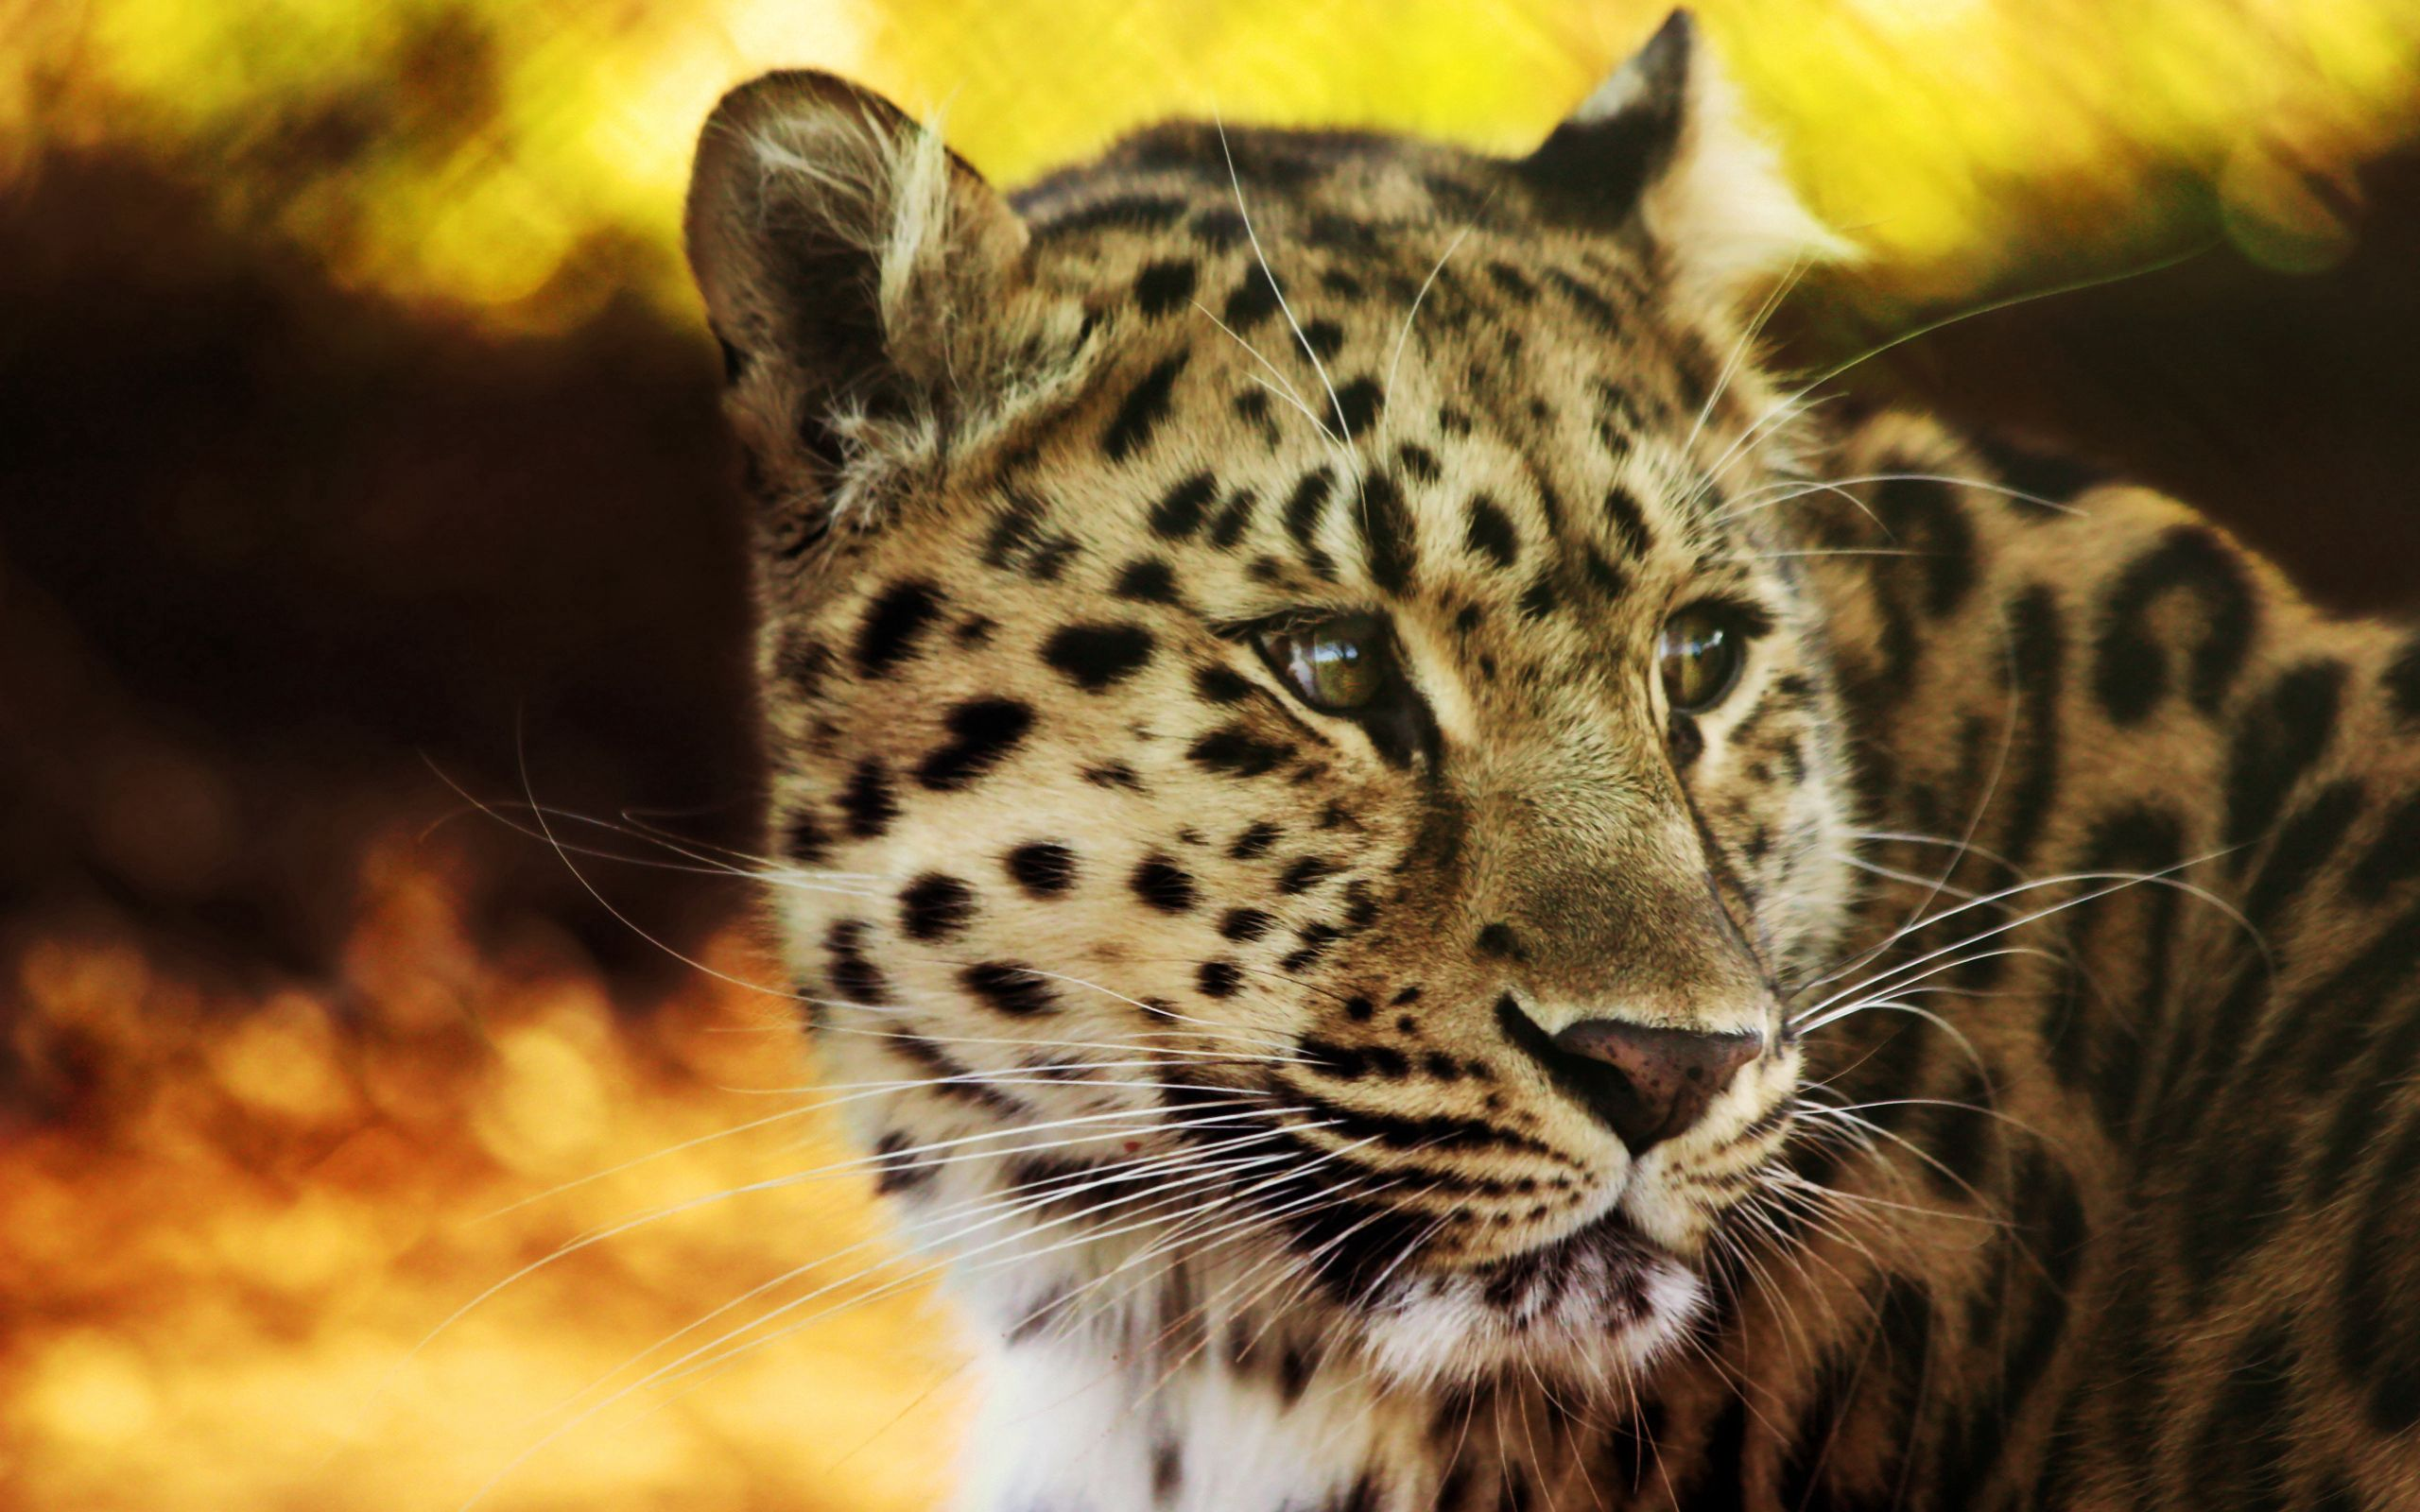 156079 download wallpaper Animals, Leopard, Muzzle, Spotted, Spotty, Big Cat, Predator screensavers and pictures for free